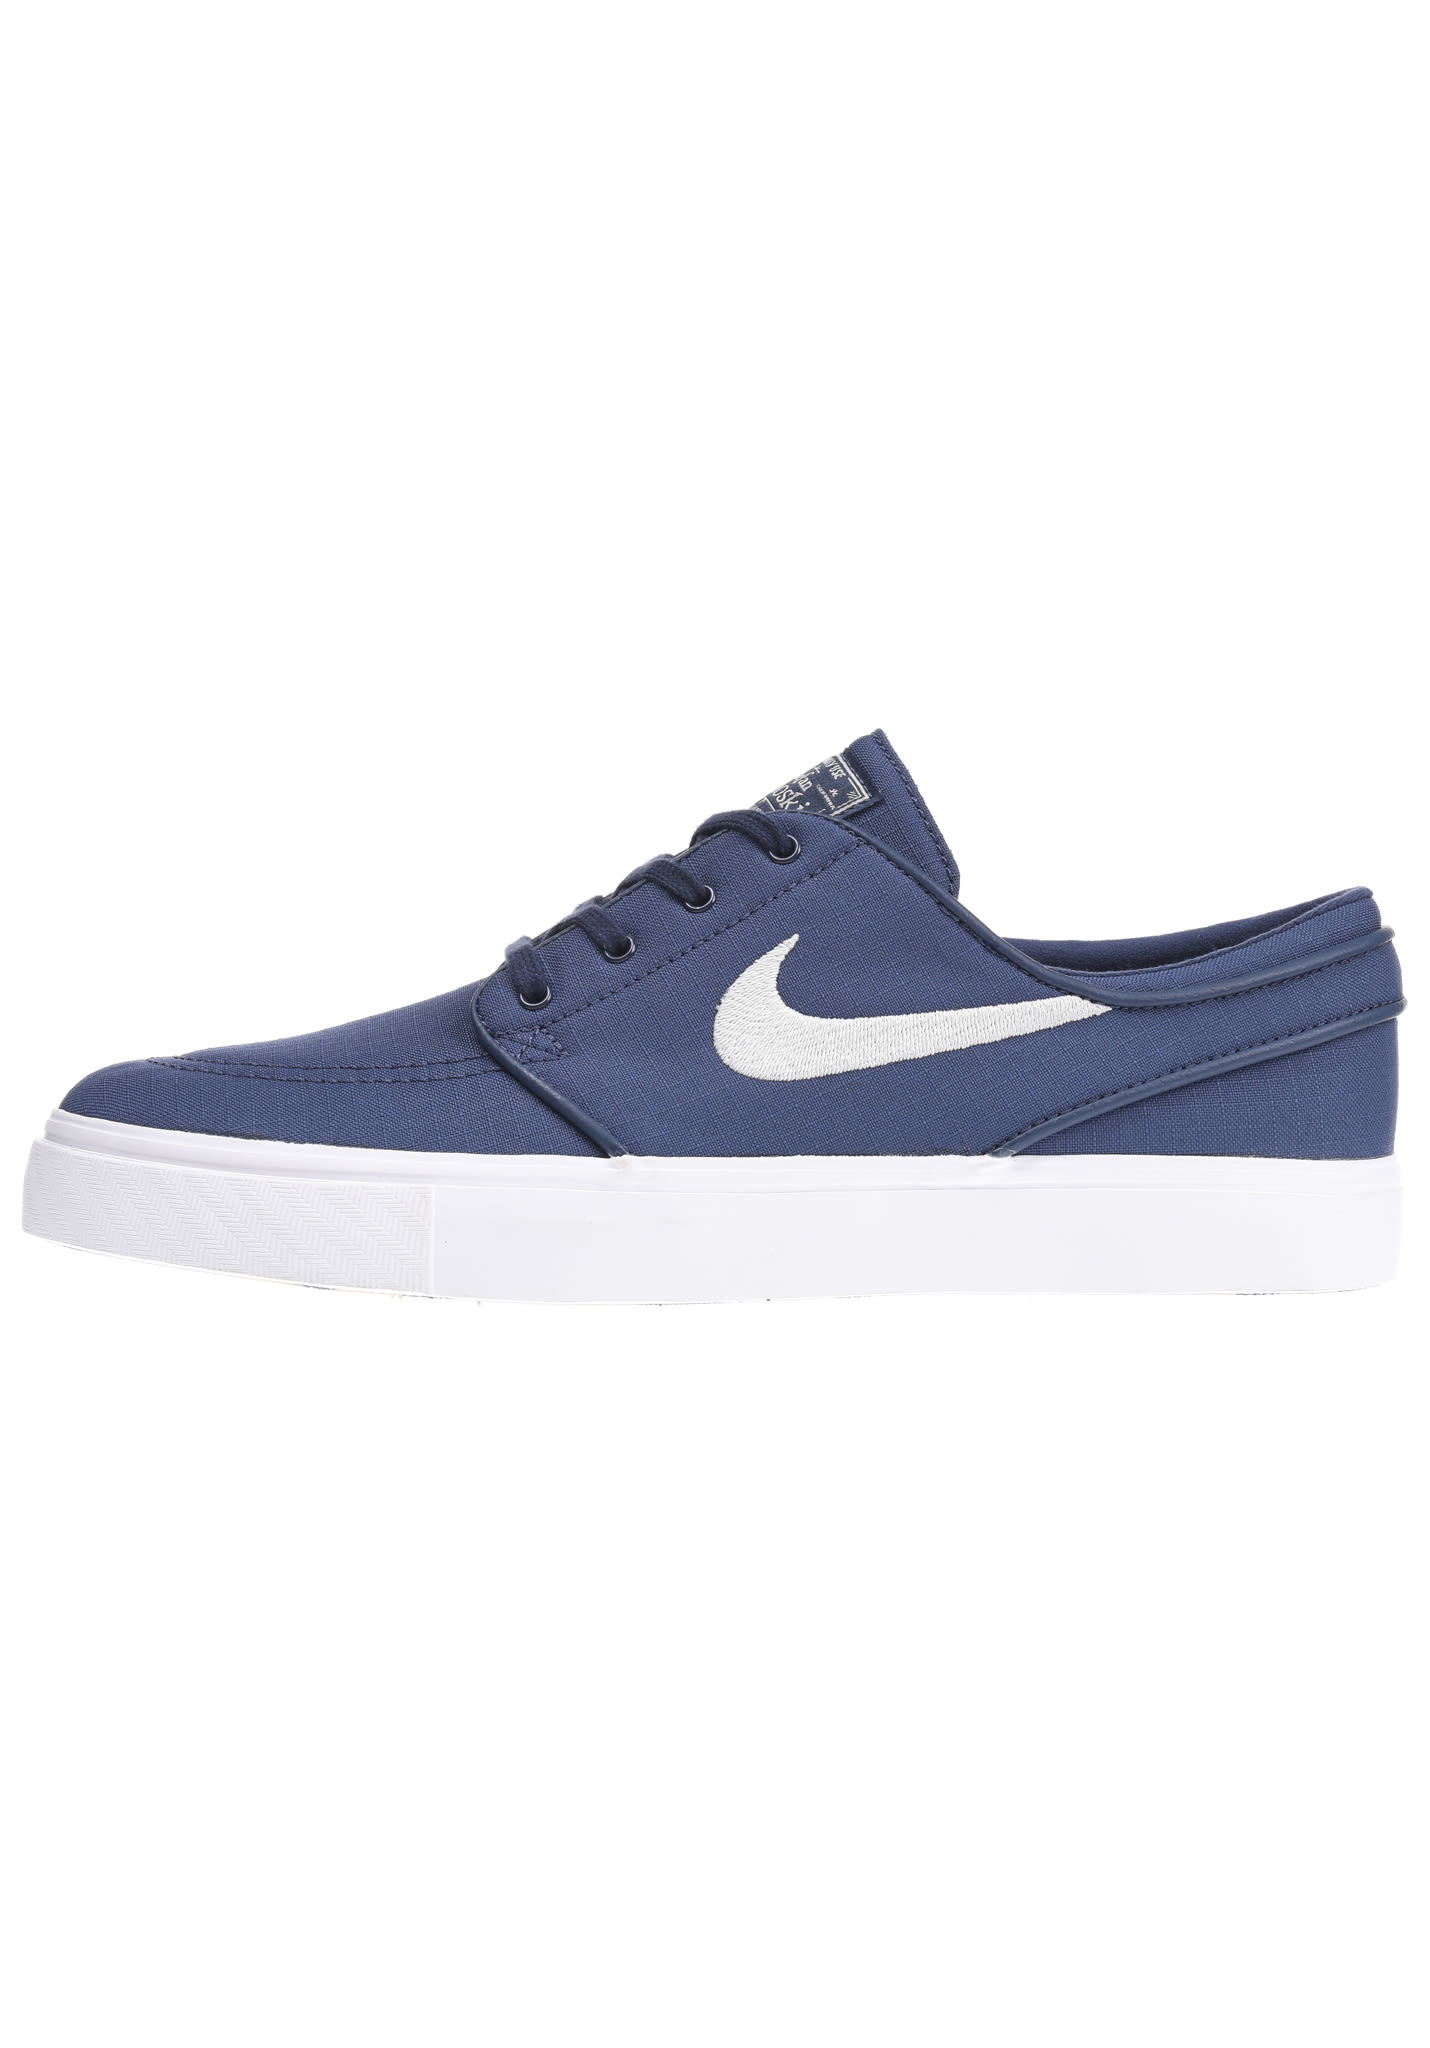 buy popular a71e3 a639c NIKE SB Zoom Stefan Janoski Canvas - Baskets pour Homme - Bleu - Planet  Sports